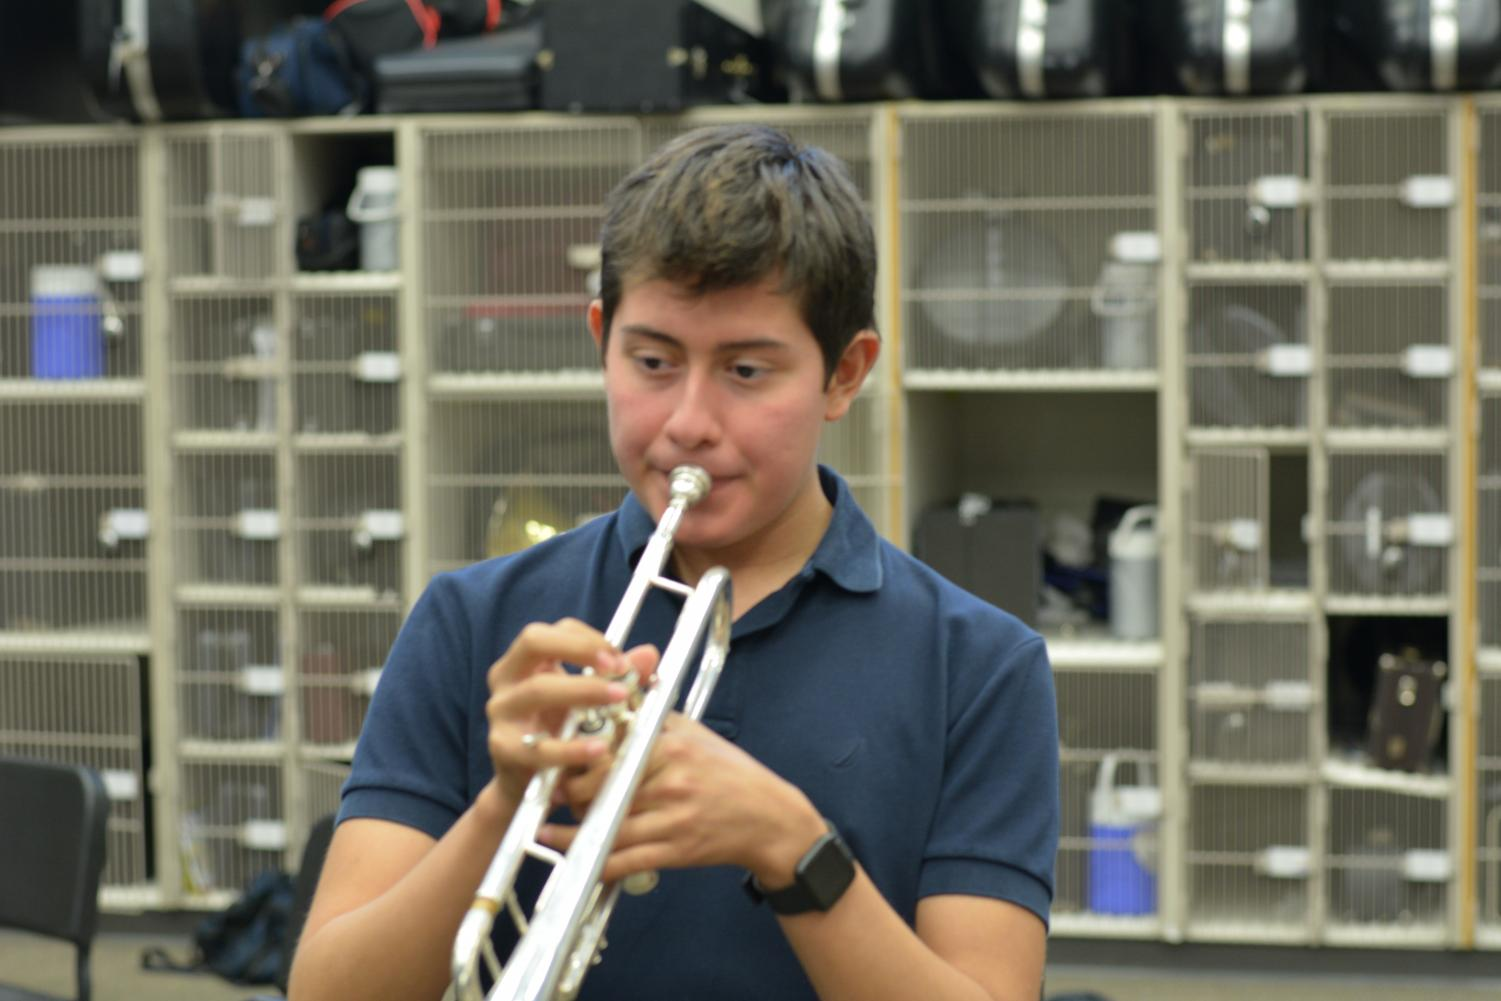 """Conquered notes \\  Focusing on his music, junior Ivan Najera plays a movement from his marching band show. The band's show this year is entitled Conquered featuring music from The Prince of Egypt and The Wind and the Lion. Najera missed over 60 days of rehearsal due to fighting cancer but still managed to learn the show music. """"I really enjoy playing music from movies I watched as a child, and it's a lot more fun than last year's,"""" Najera said."""